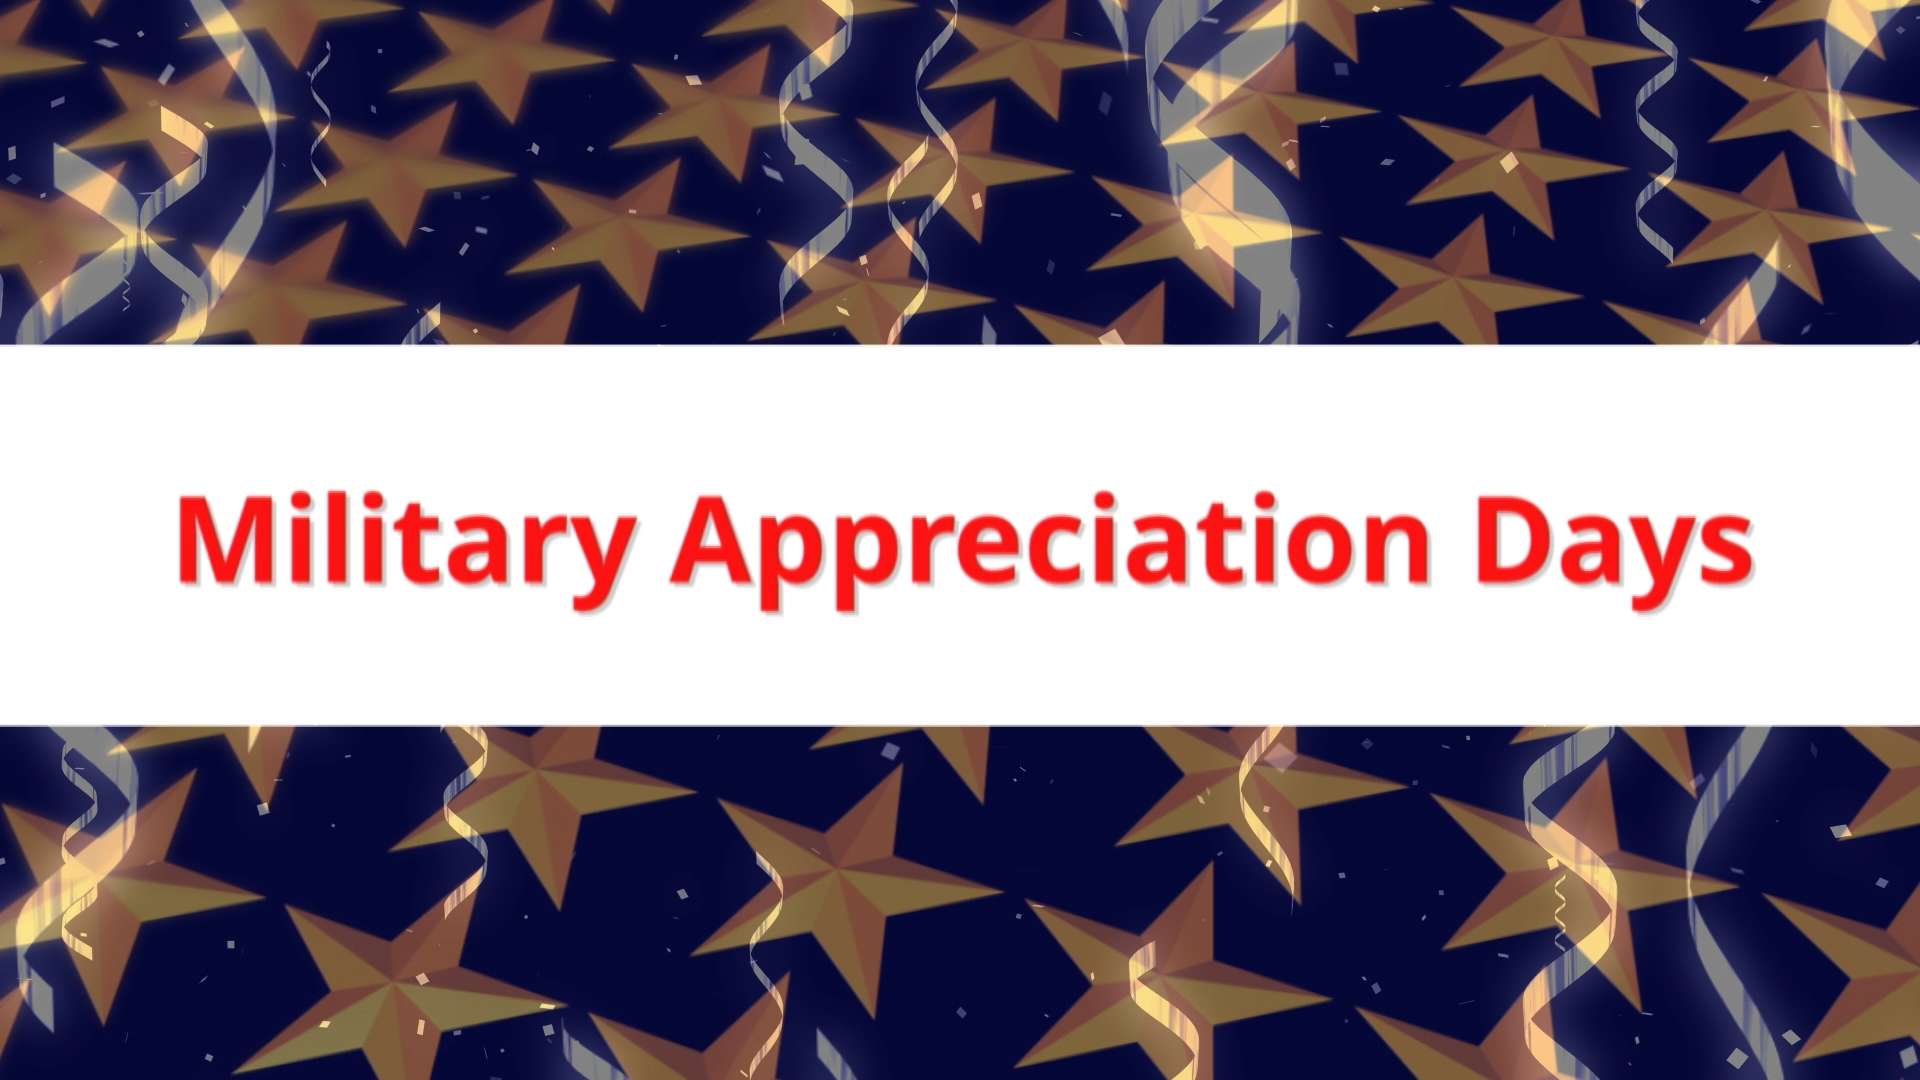 Military Appreciation Days THUMBNAIL